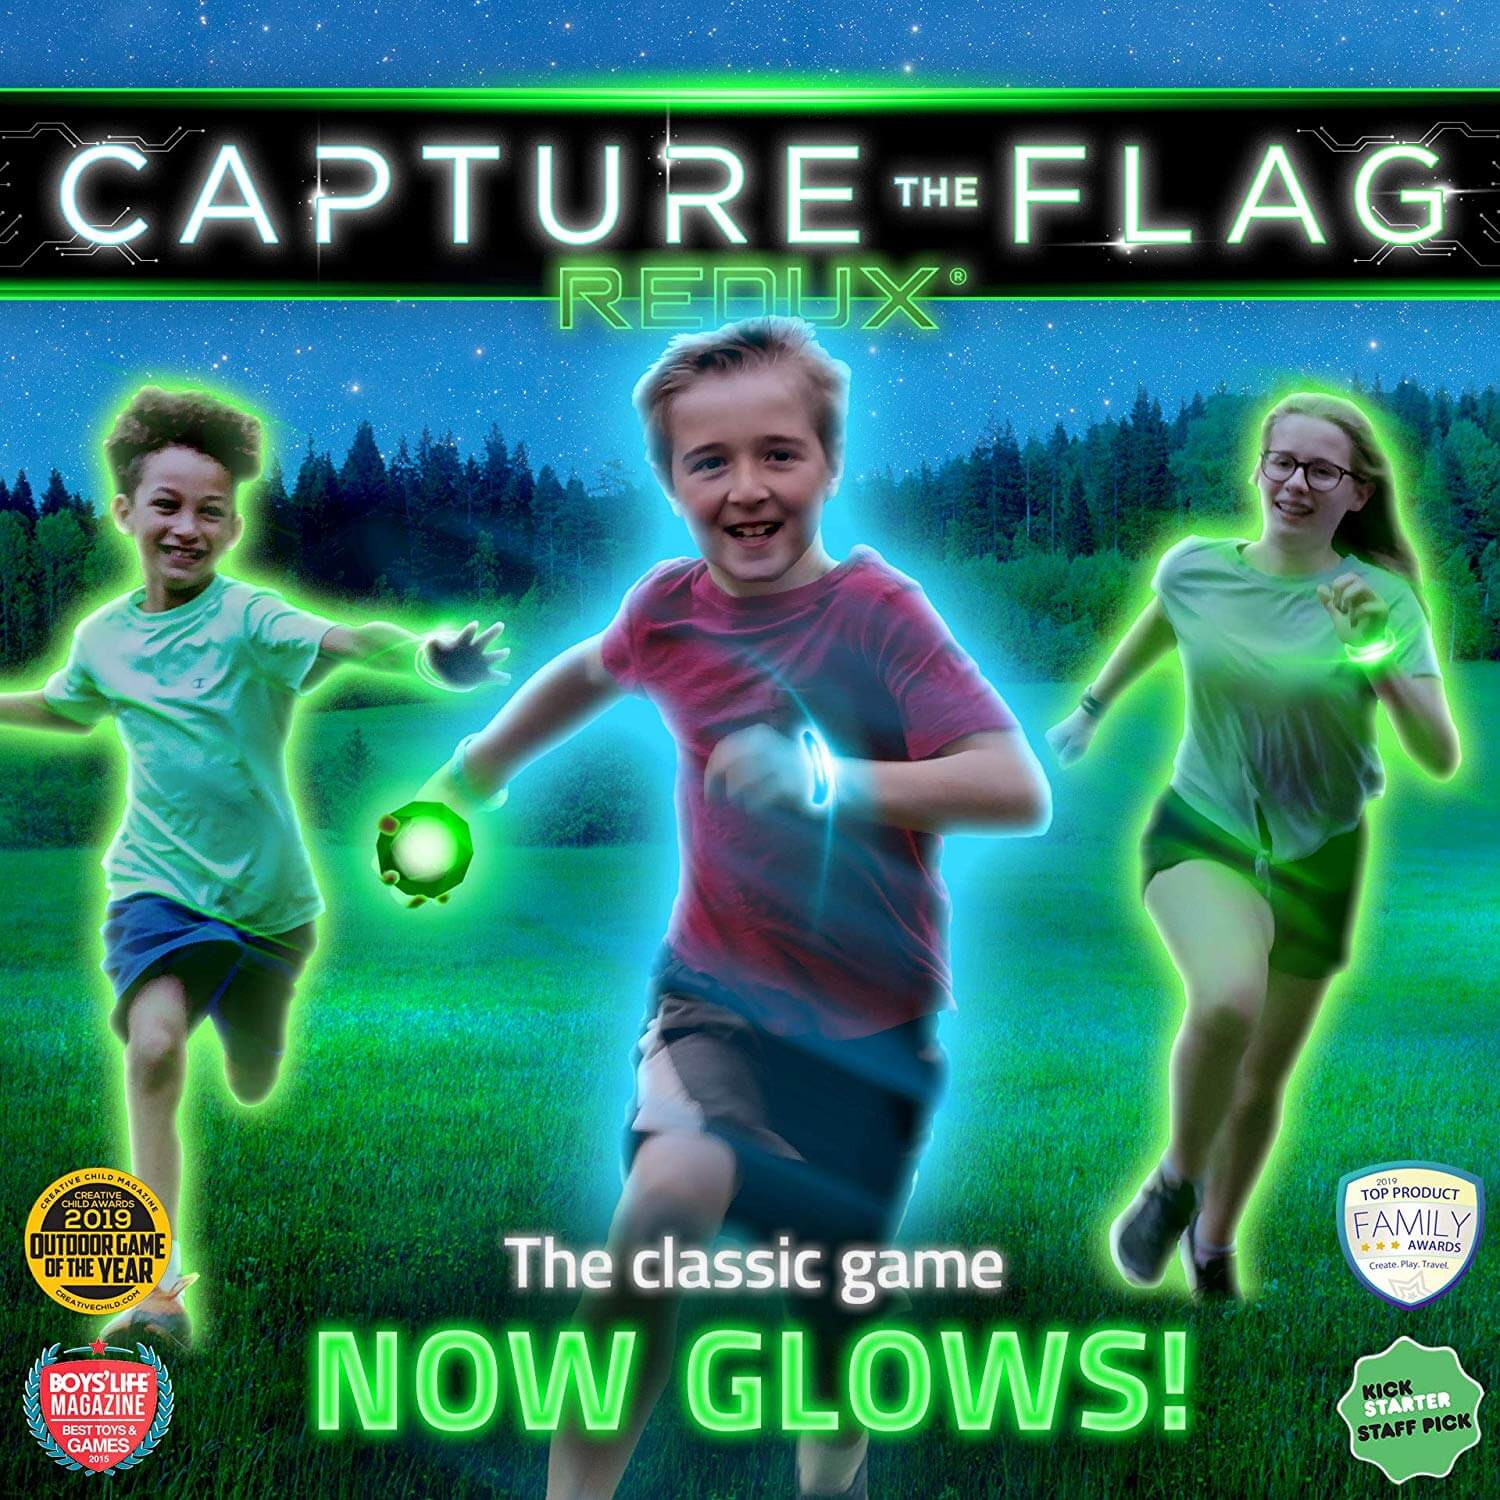 fun-outdoor-game-capture-the-flag